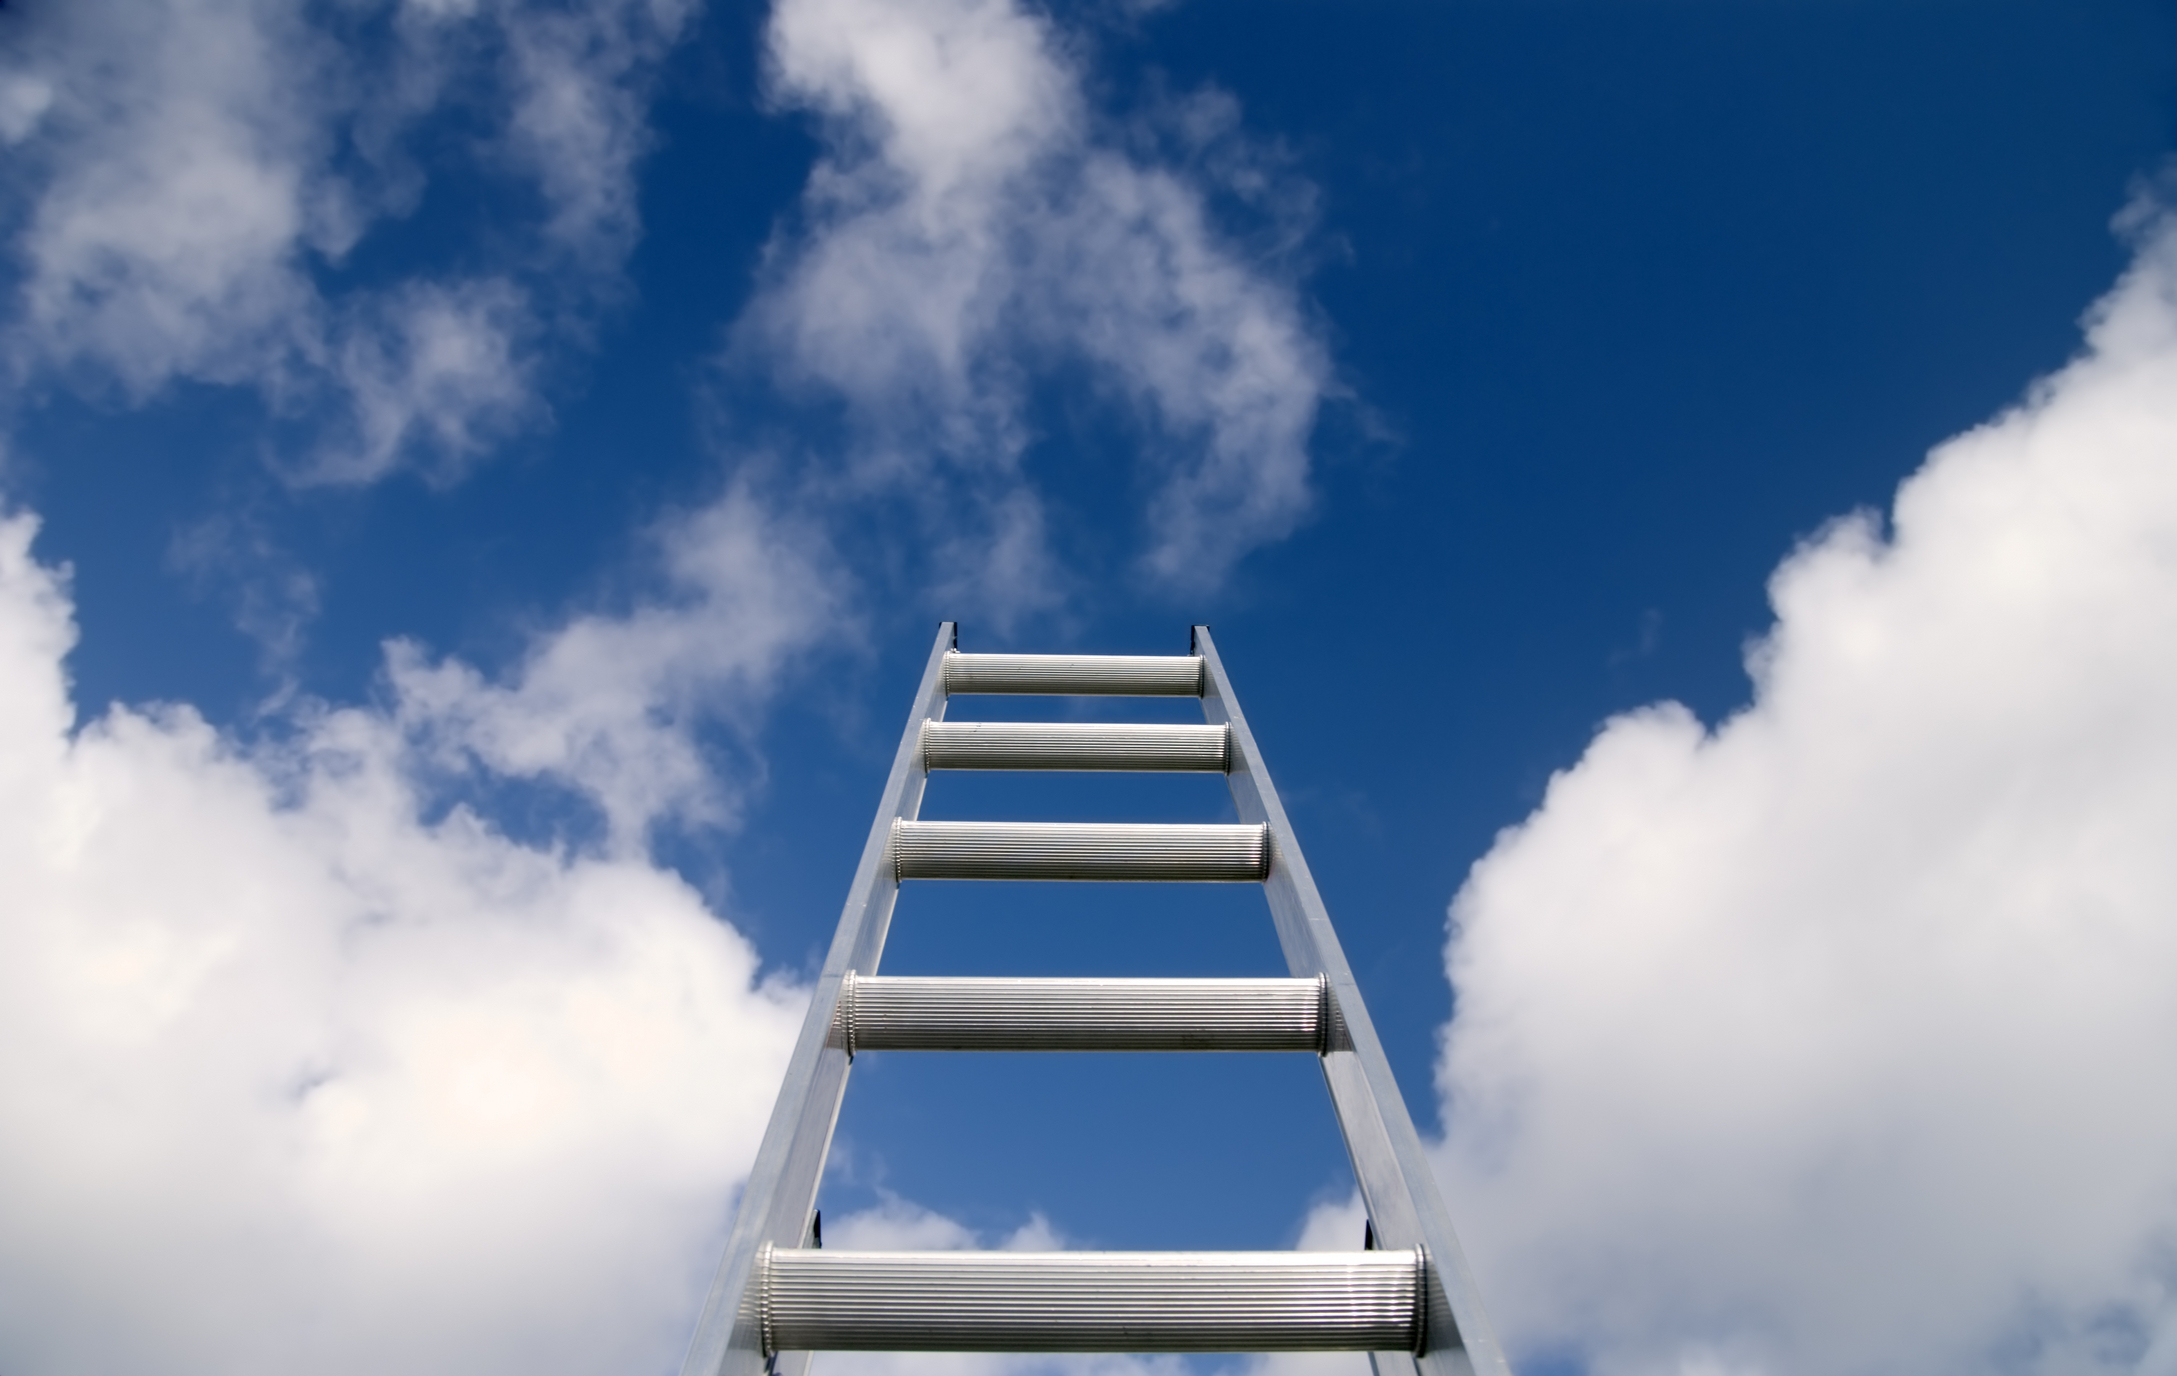 Balance, Integration and Message of Jacob's Ladder